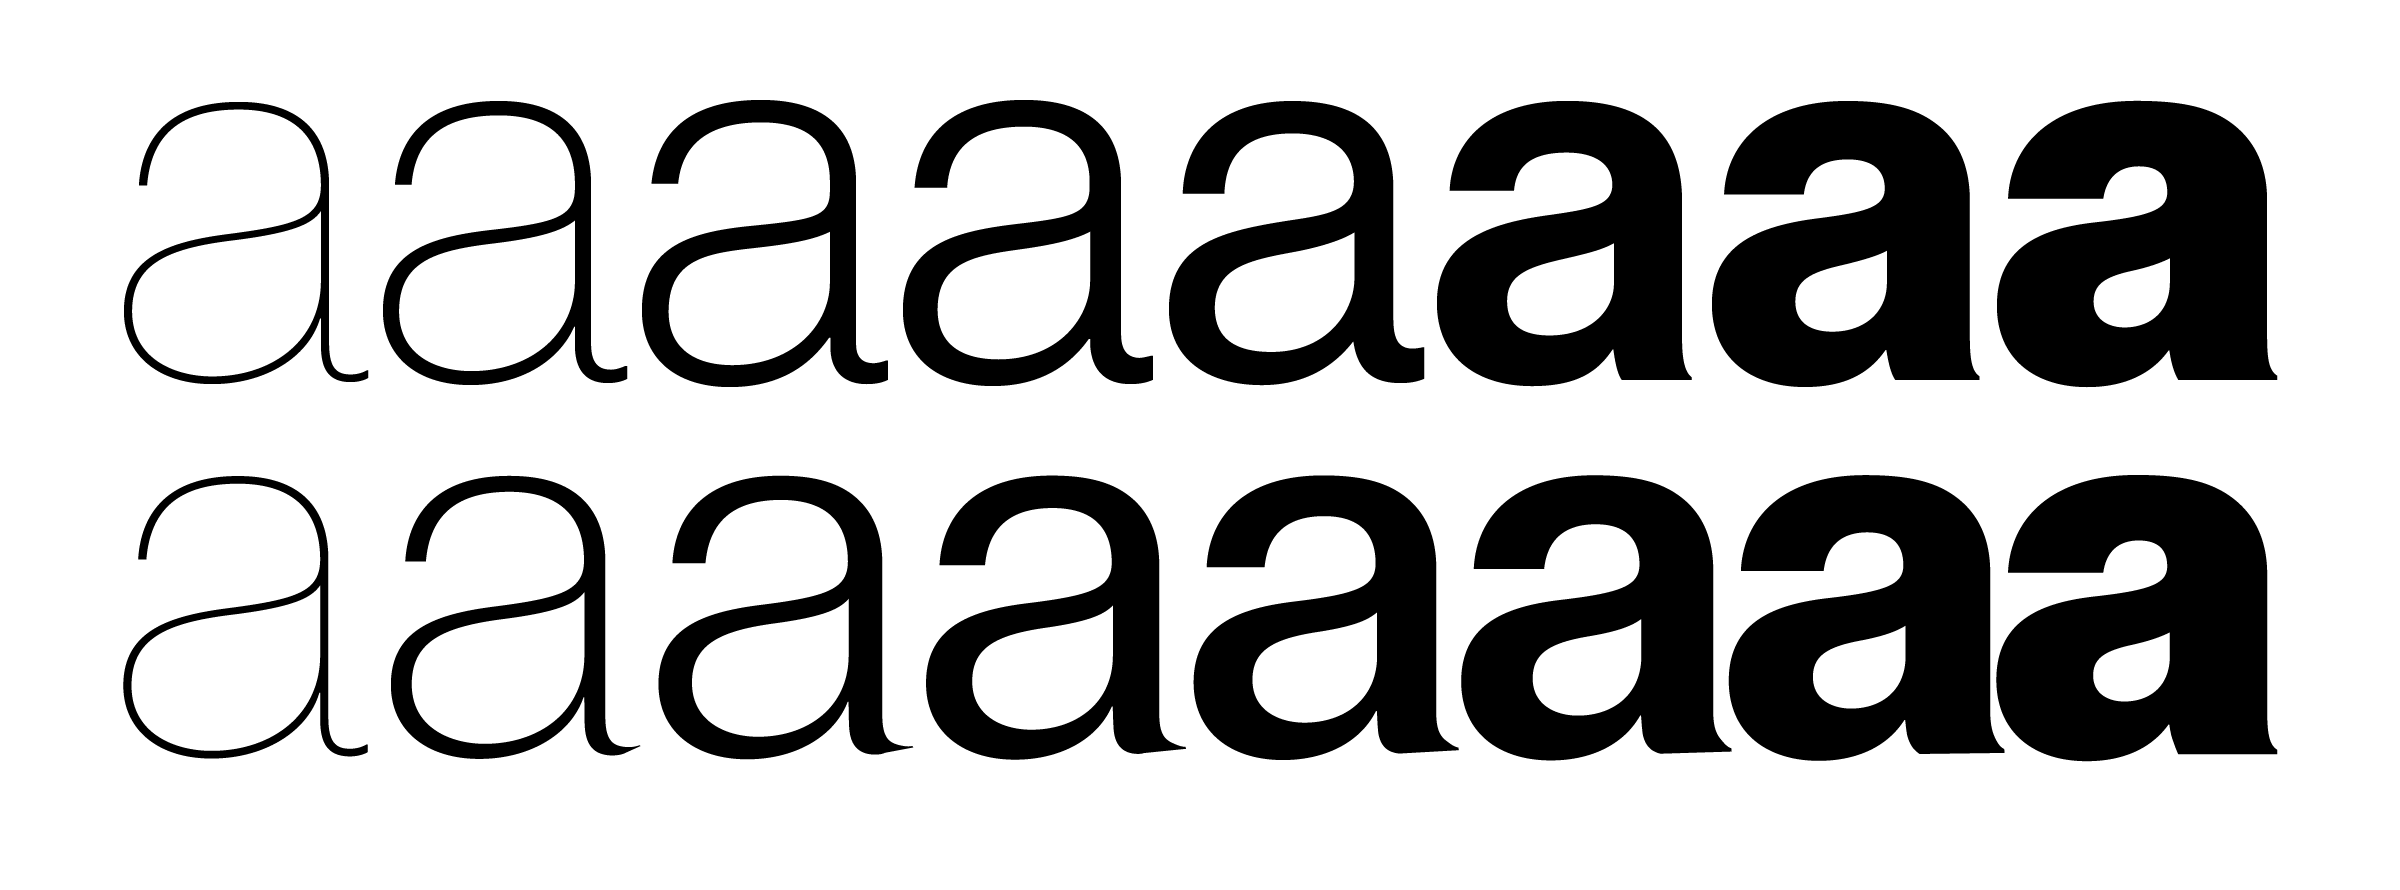 [Neue Haas Grotesk's](/families/neue-haas-grotesk) **a** (up top) has a tail that gets clipped as it progresses beyond its Roman, or regular weight. Variable fonts can handle these kinds of non-linear (or non-point-compatible) relationships. Below it I use the Blend tool in Illustrator to give an example of what a truly linear progression looks like.